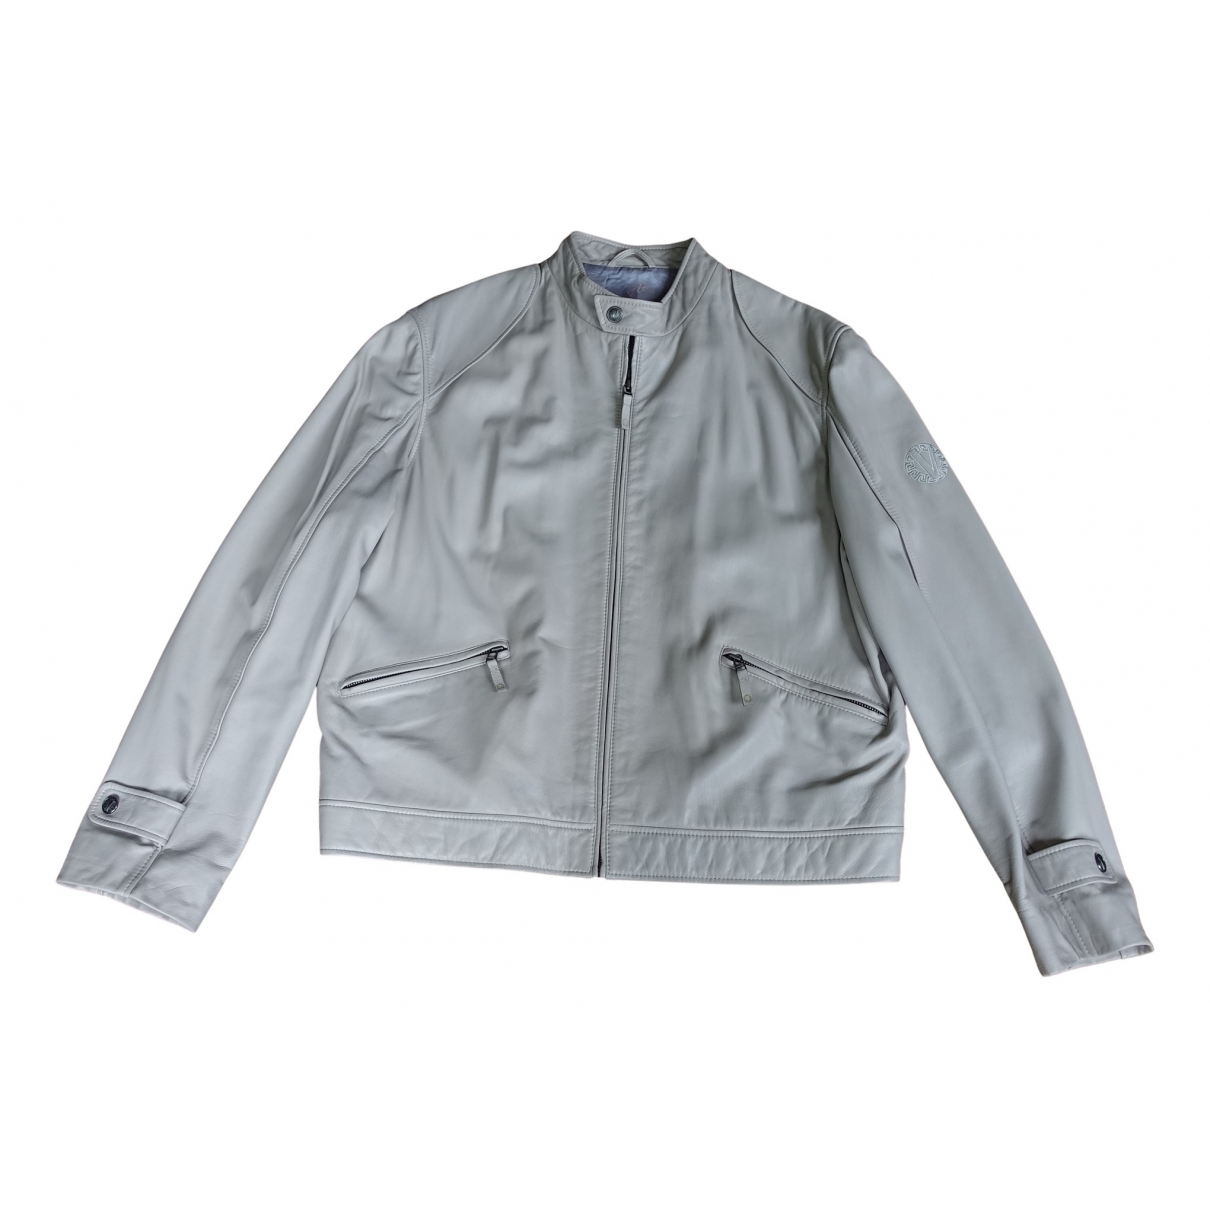 Versace N Grey Leather jacket  for Men 56 IT